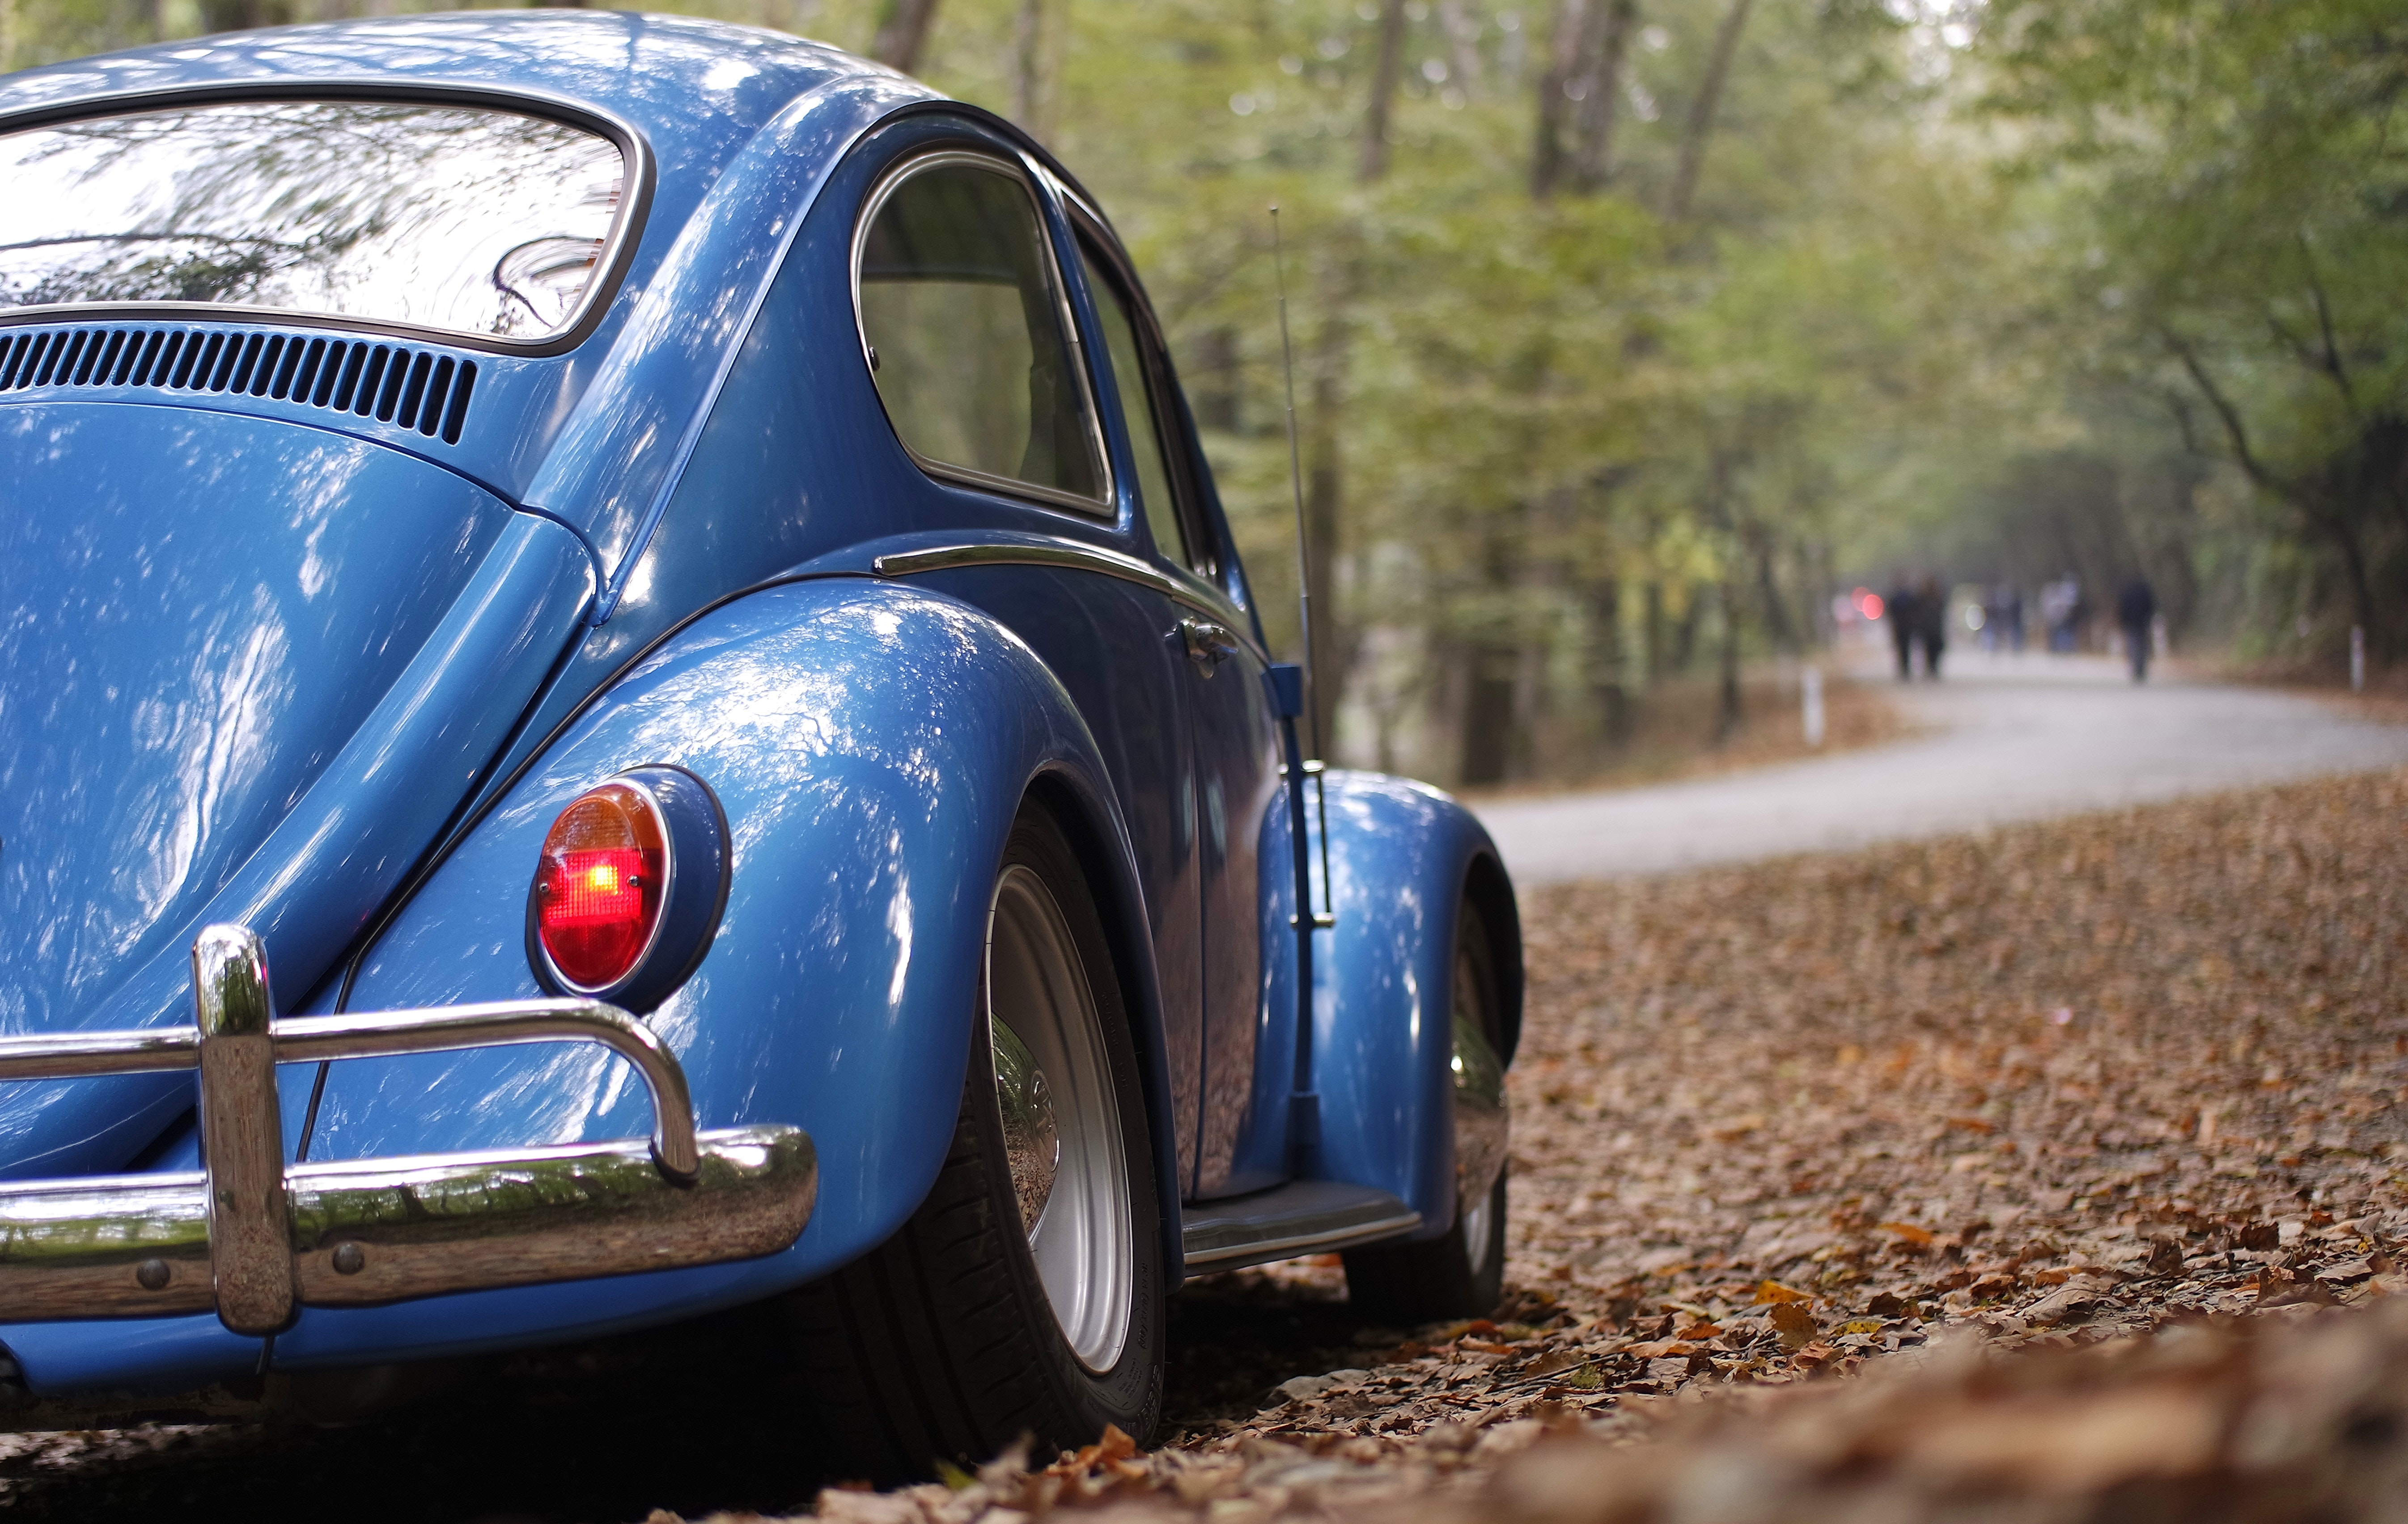 Blue volkswagen beetle vintage car surrounded by dry leaves during daytime photo